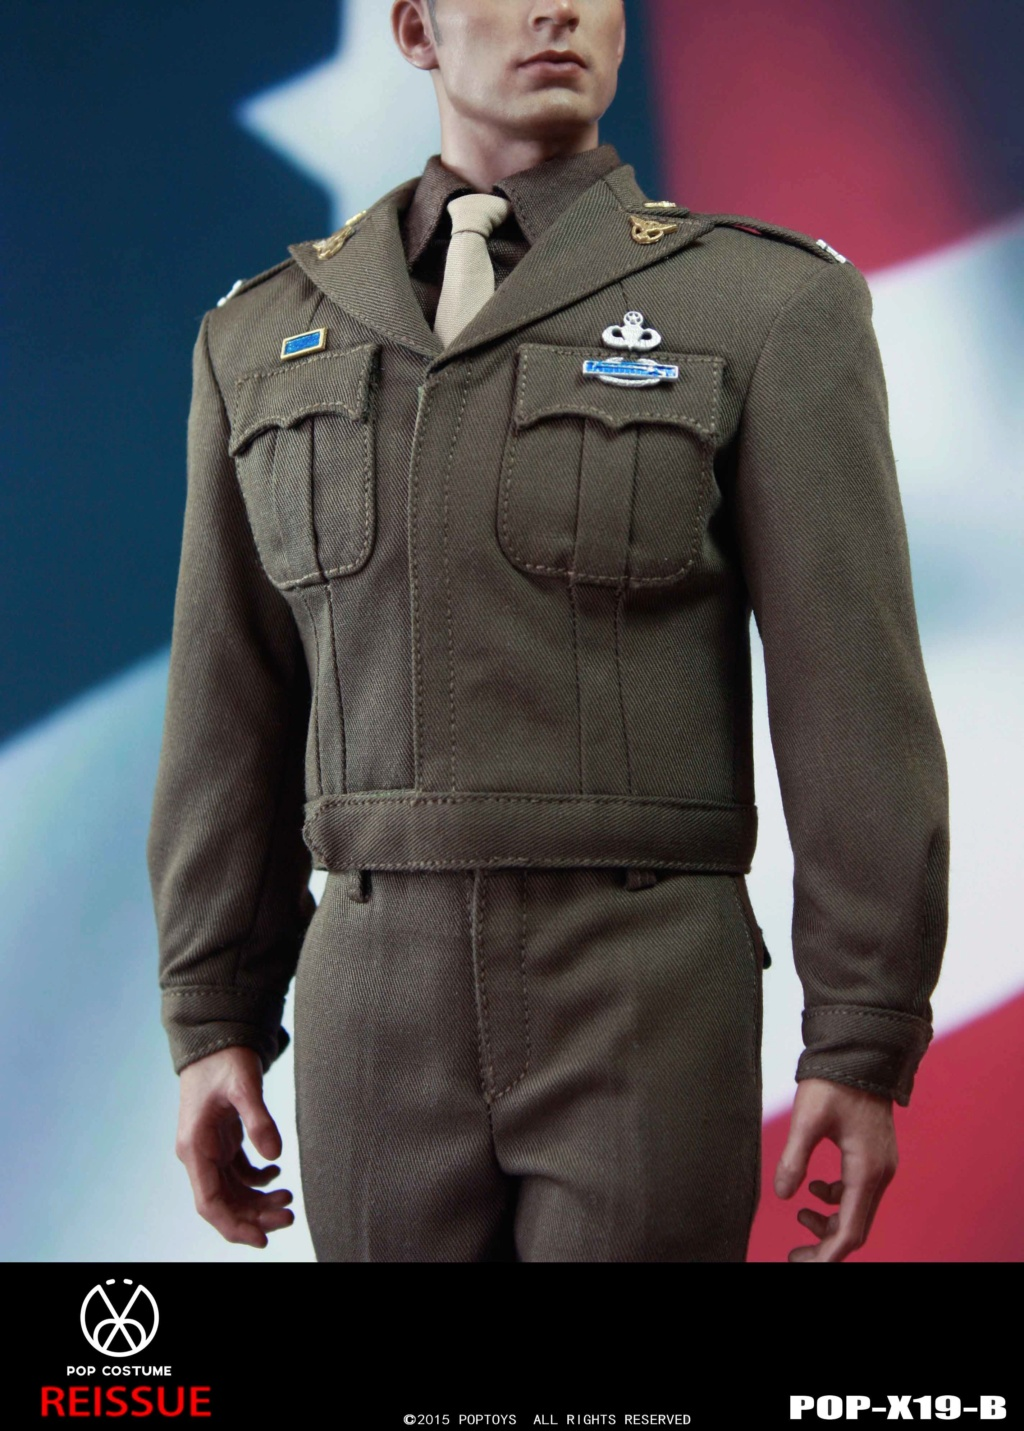 male - NEW PRODUCT: POPTOYS: 1/6 Series X19 - World War II Golden Age US Army Uniform Uniform Set - B (Reprinted in 2019) 21302111